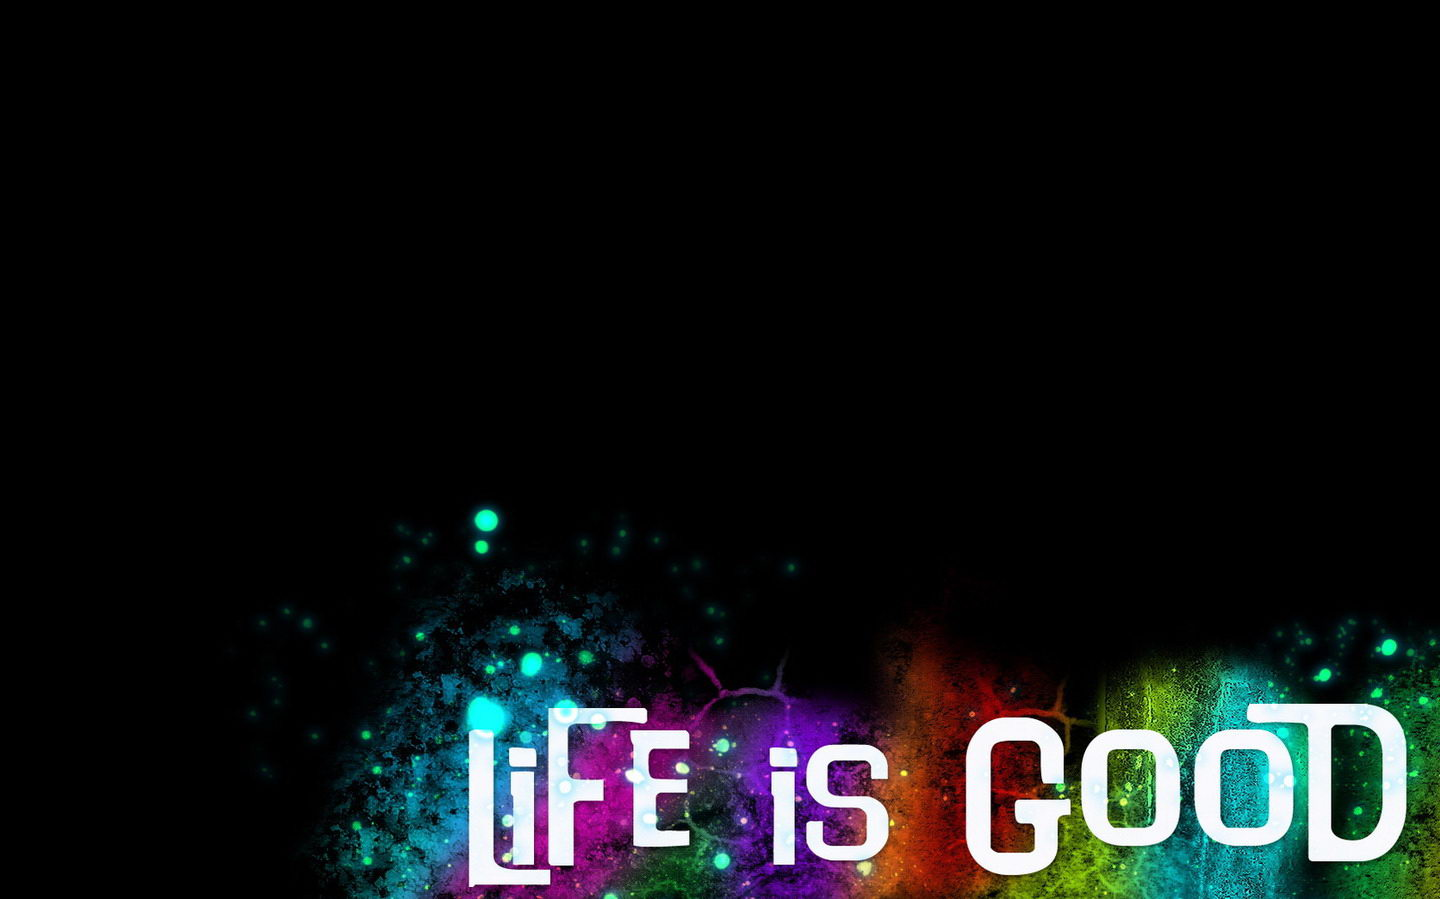 Life Is Good Widescreen Full HD Wallpaper | Free Download xml Blogger Themes